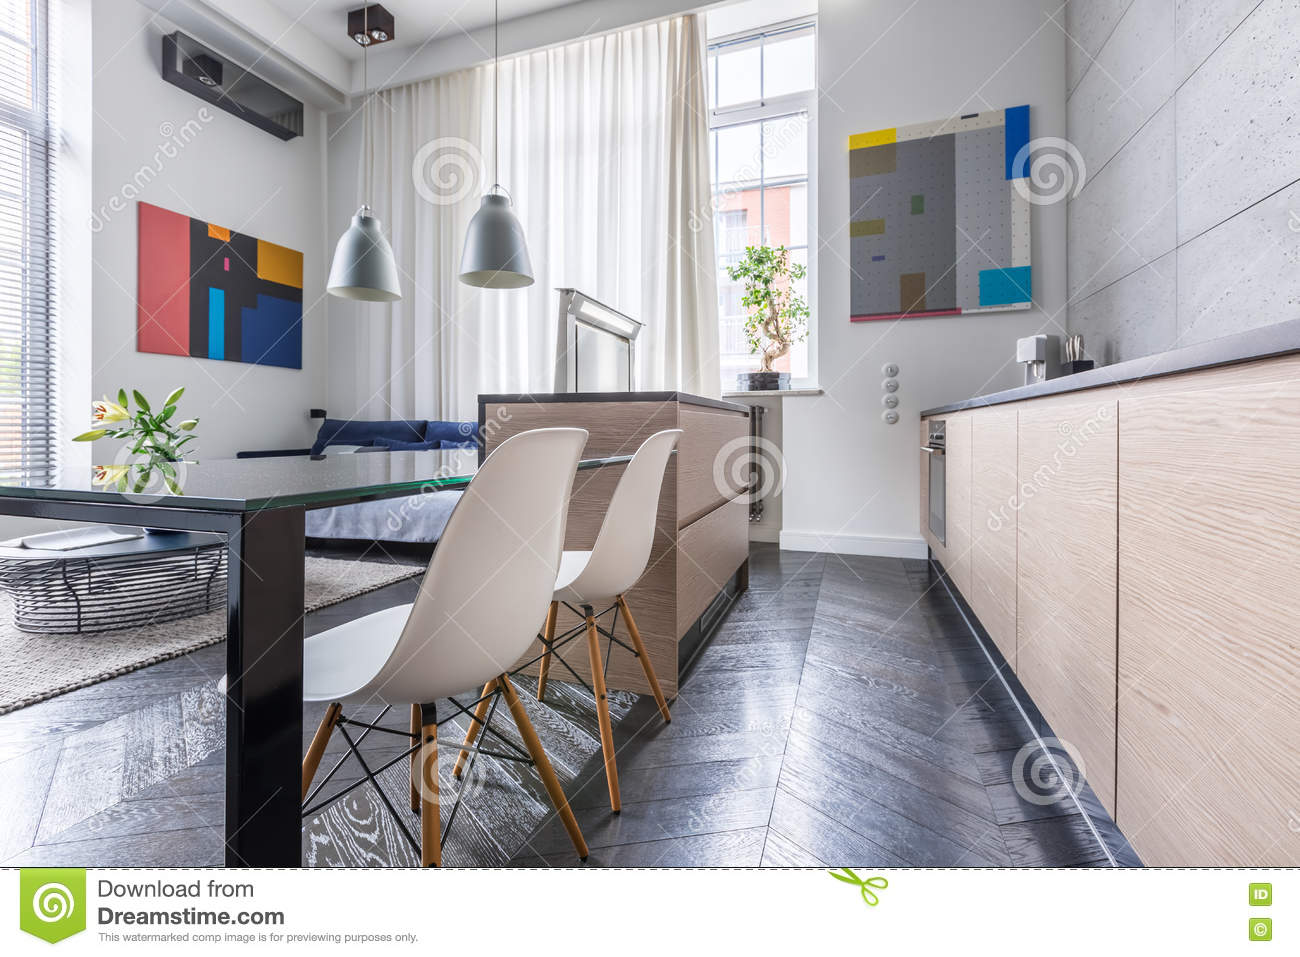 Contemporary Kitchen With Table Stock Photo - Image of ...